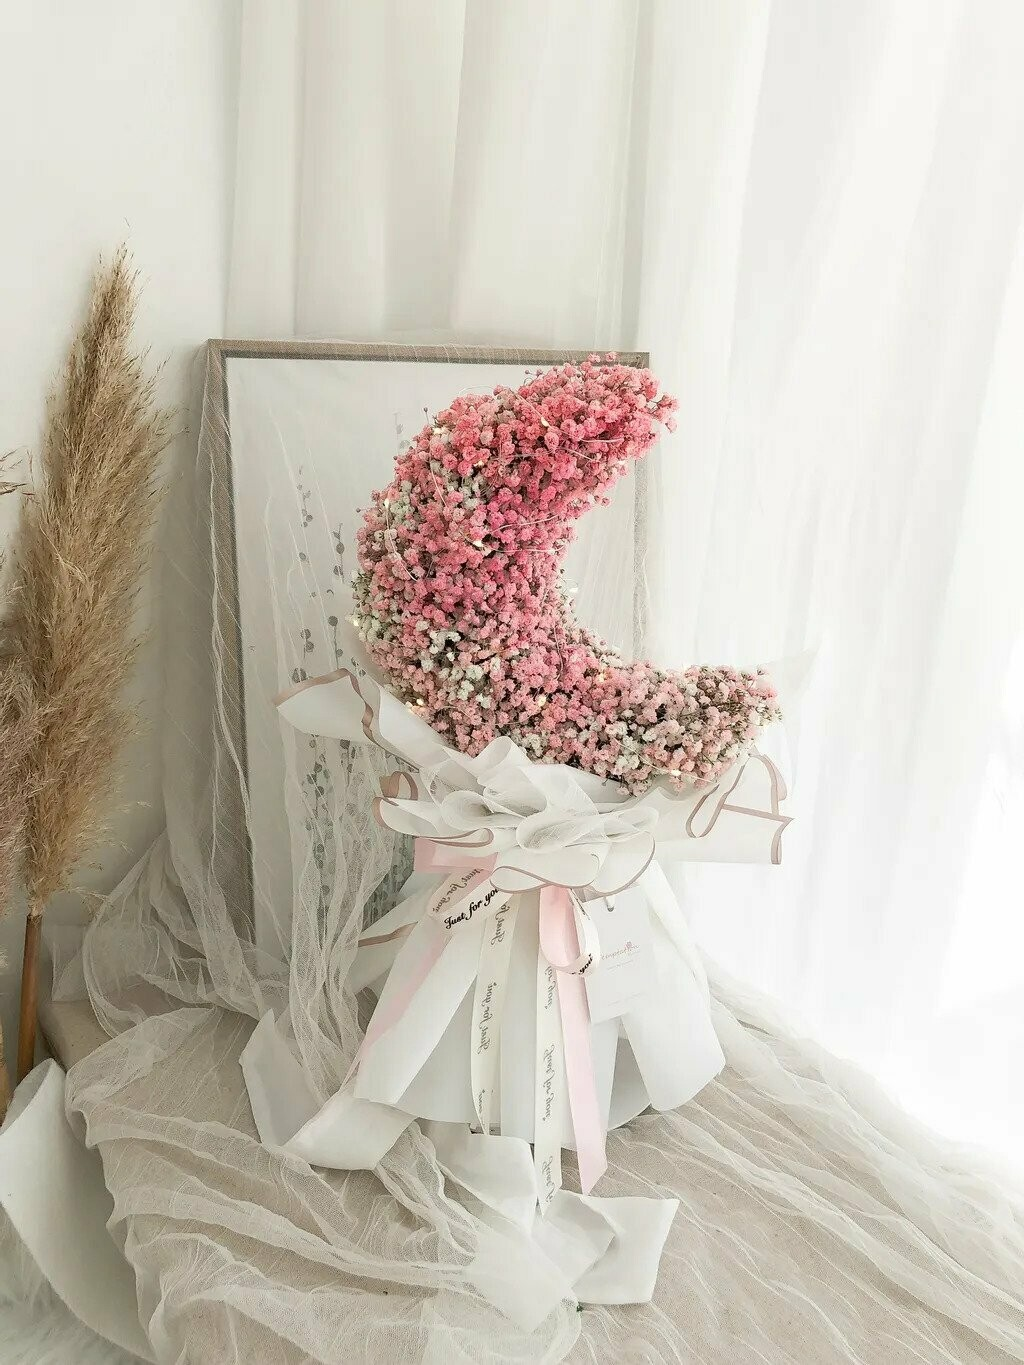 Baby Moon (By:Temptation Florist from Seremban)